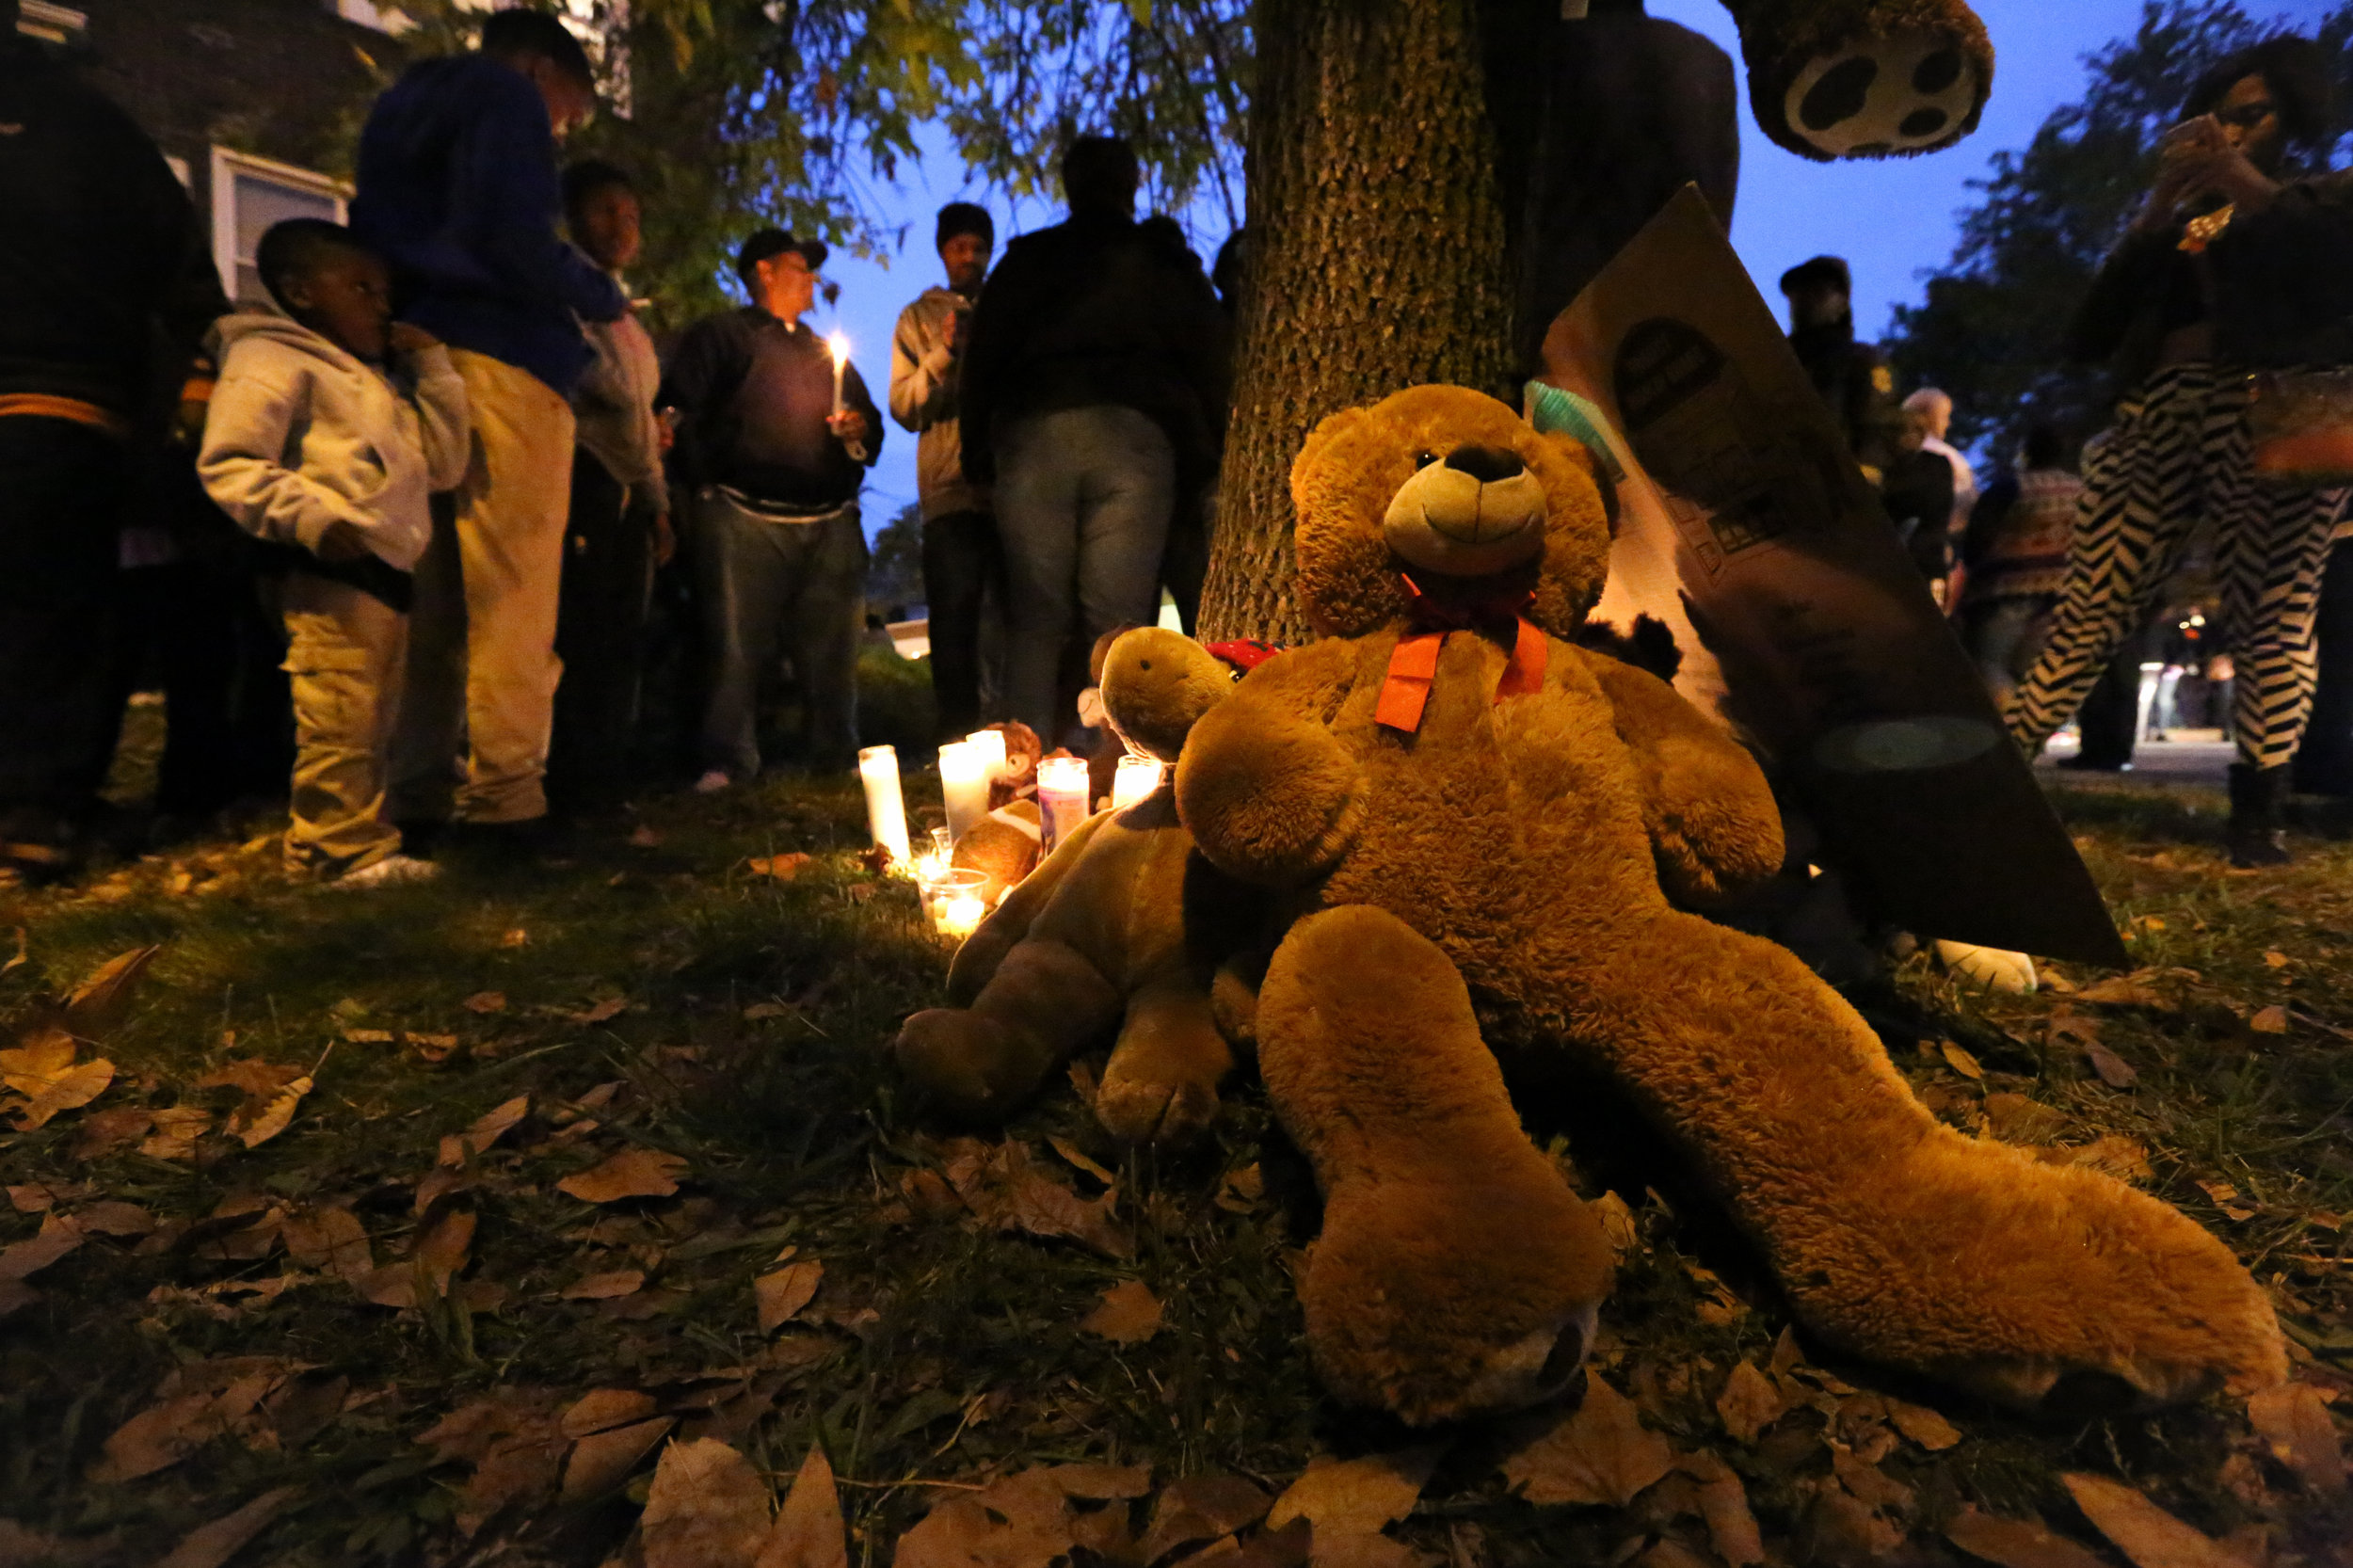 A memorial is formed in the front yard of 18-year-old Vonderrit Myers Jr., killed by an off-duty St. Louis police officer on October 8, 2014, just months after the killing of Michael Brown in Ferguson, MO.